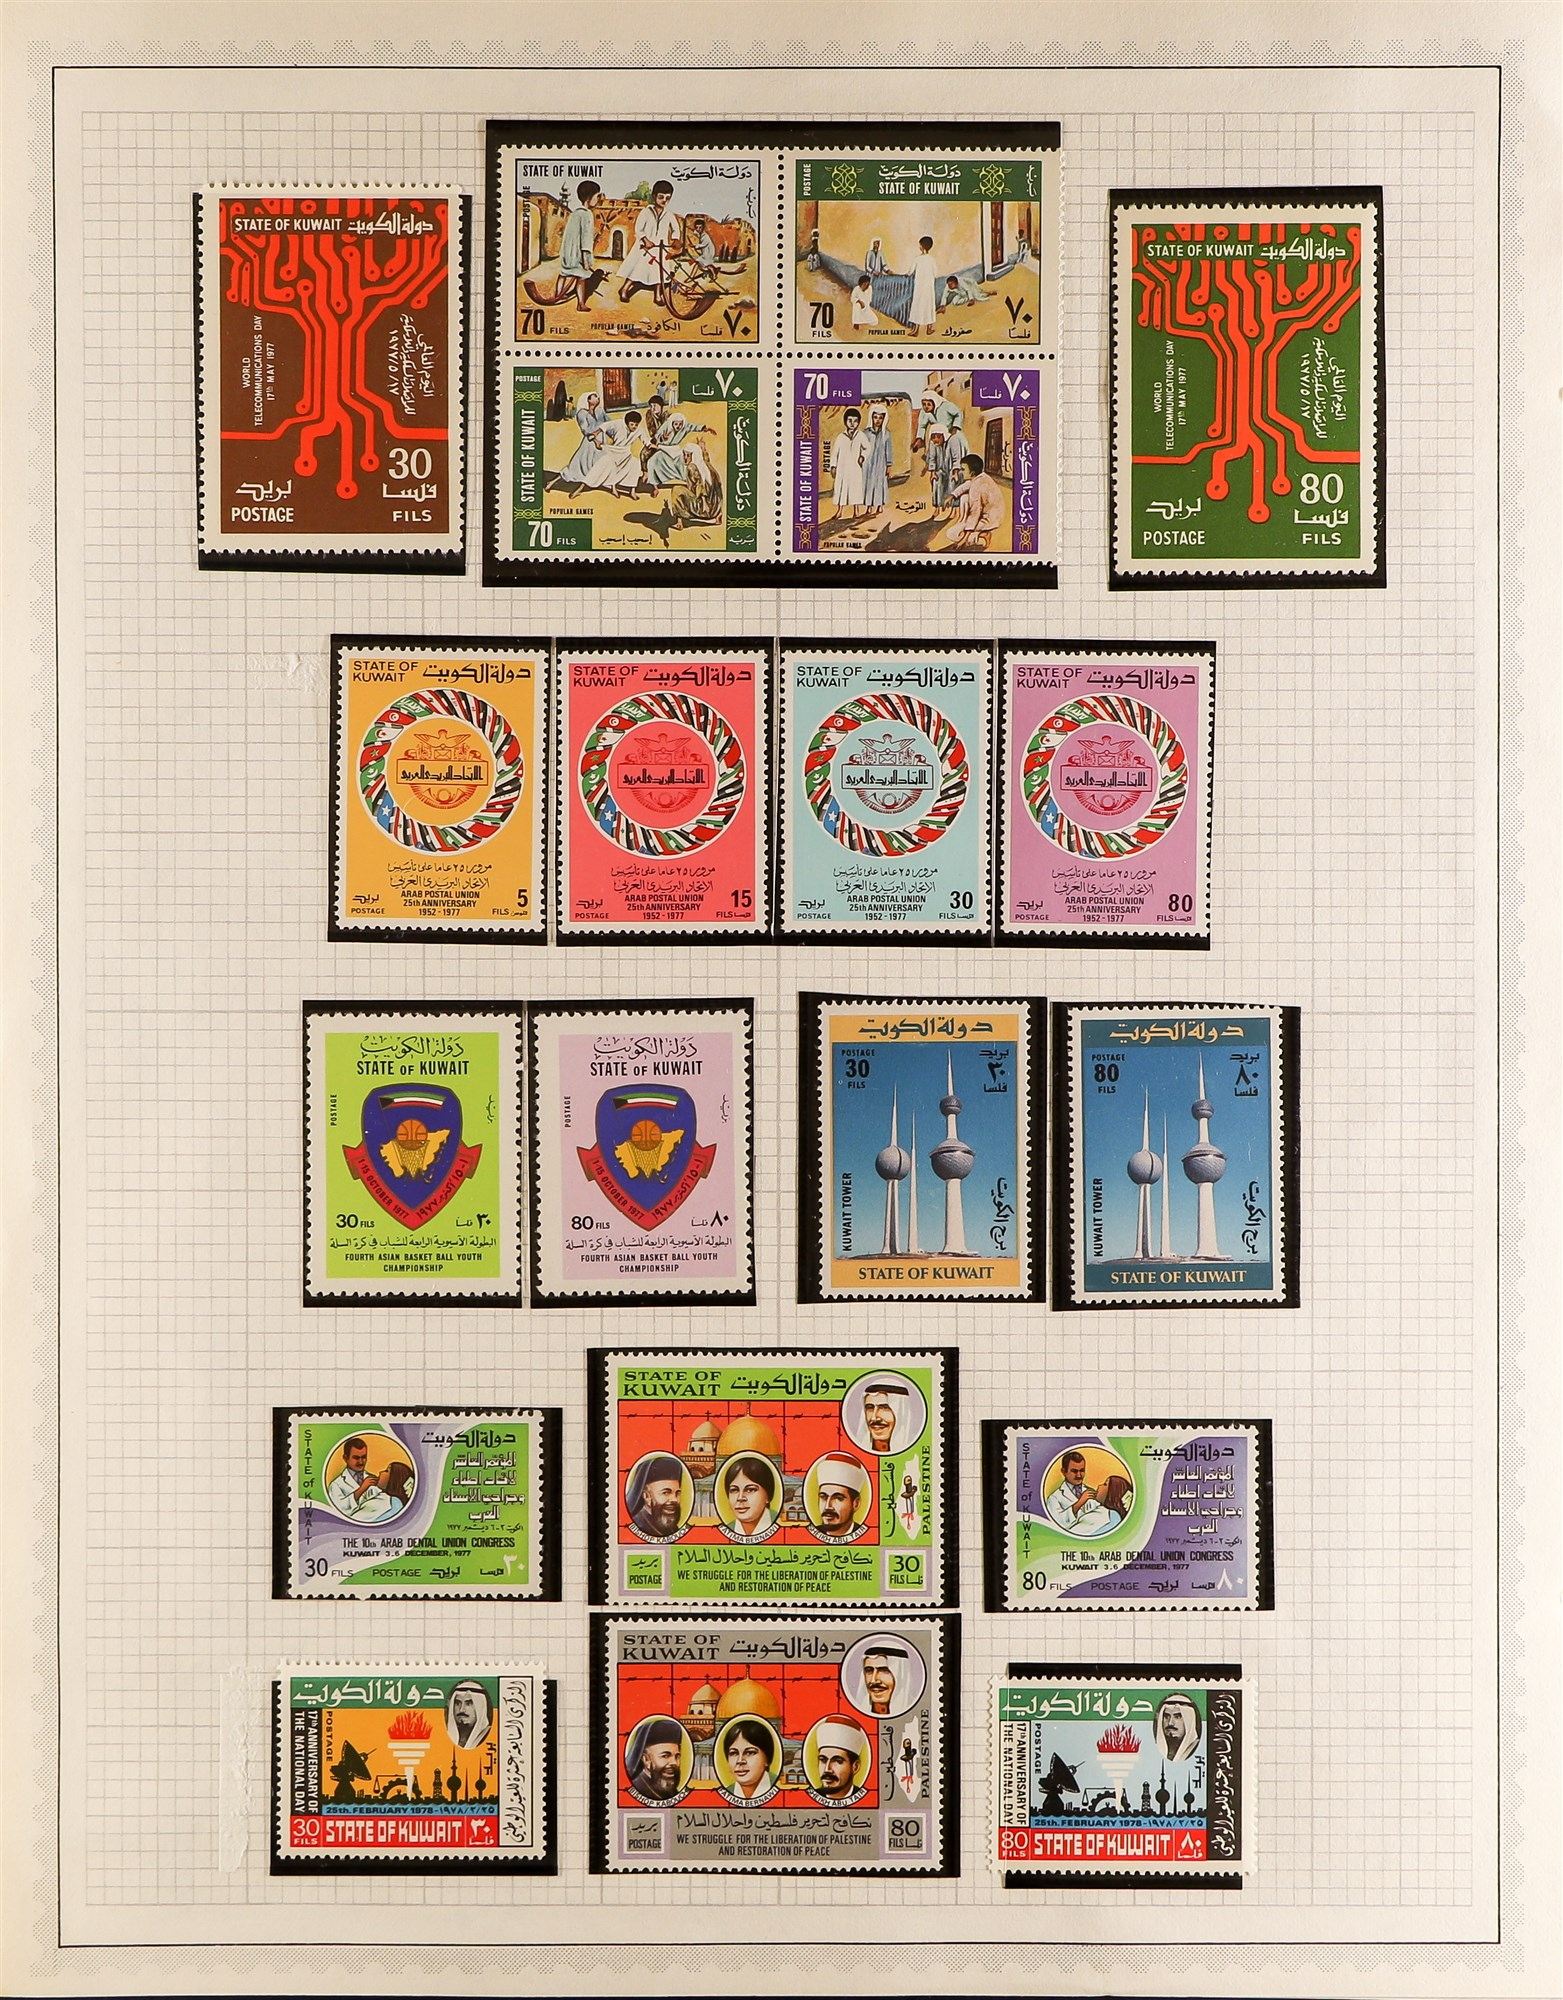 KUWAIT 1977-1983 NEVER HINGED MINT COLLECTION incl. 1977 Sheikh set, 1977 Games se-tenant blocks - Image 4 of 8